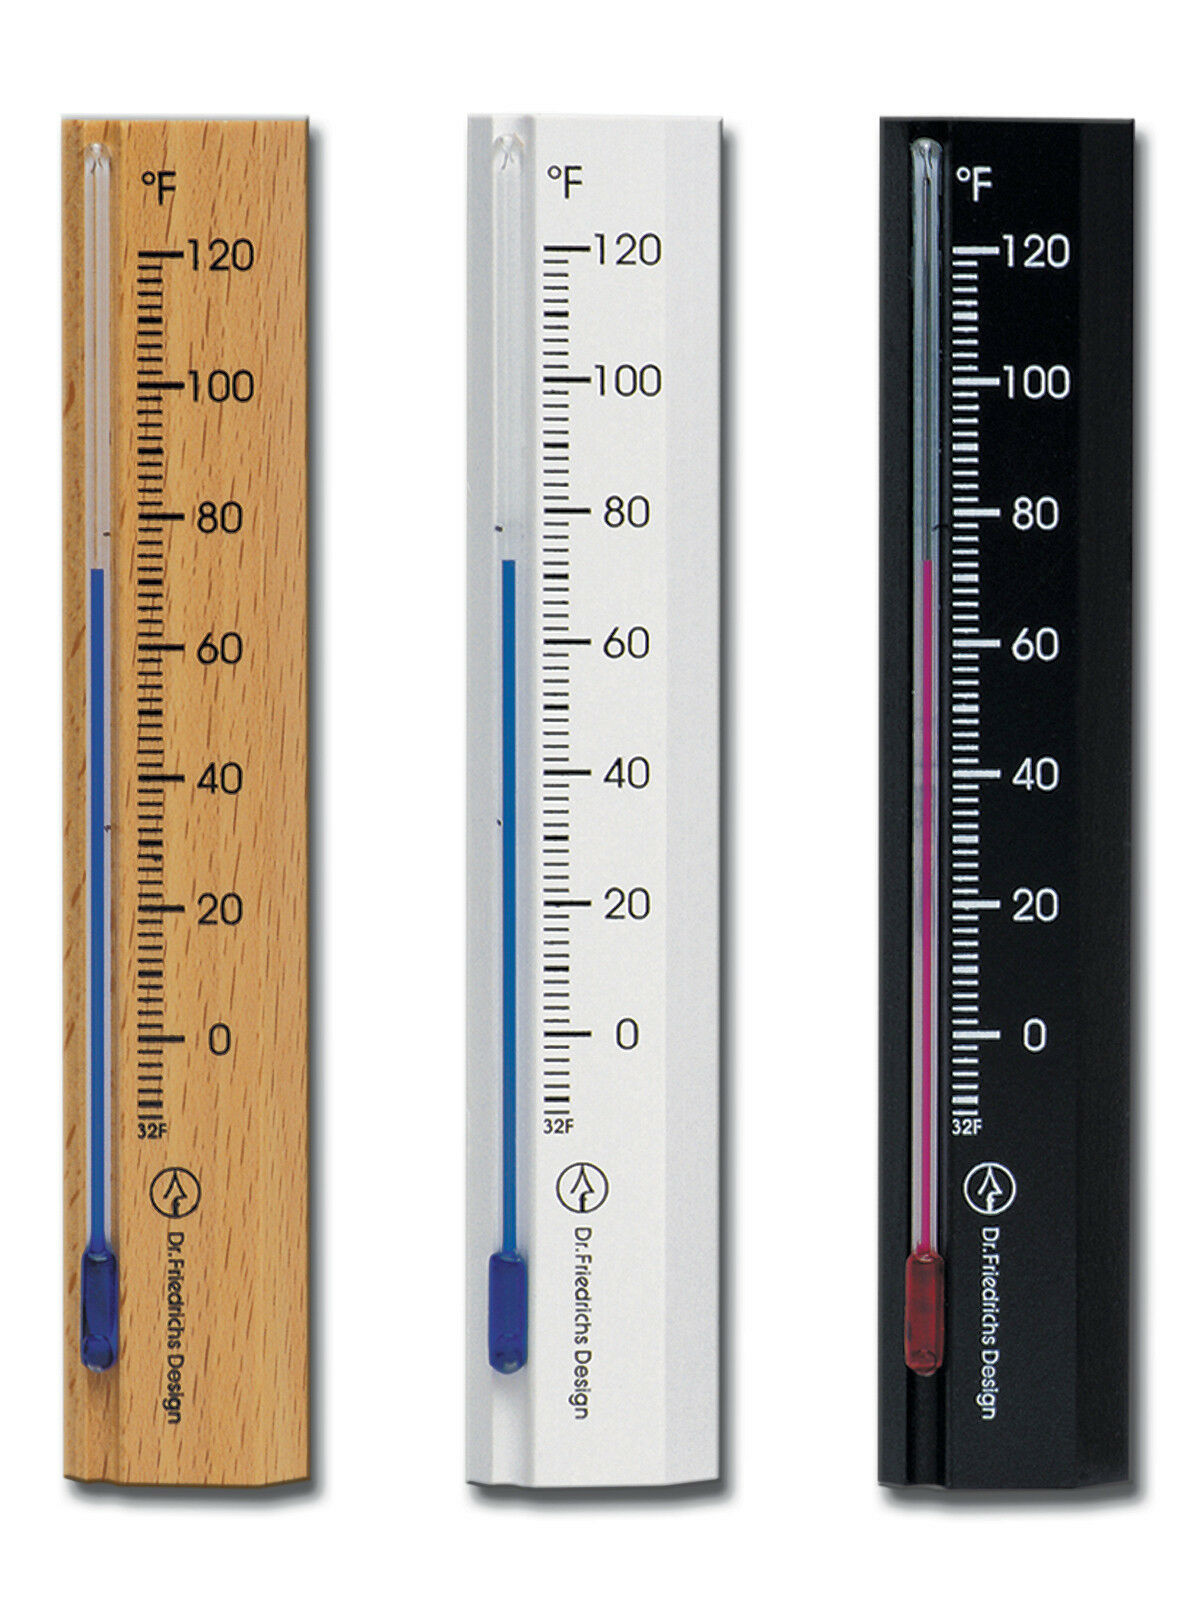 Analog Wall Thermometer Beech Wood Black, White or Natural Finish 6.0 inch tall